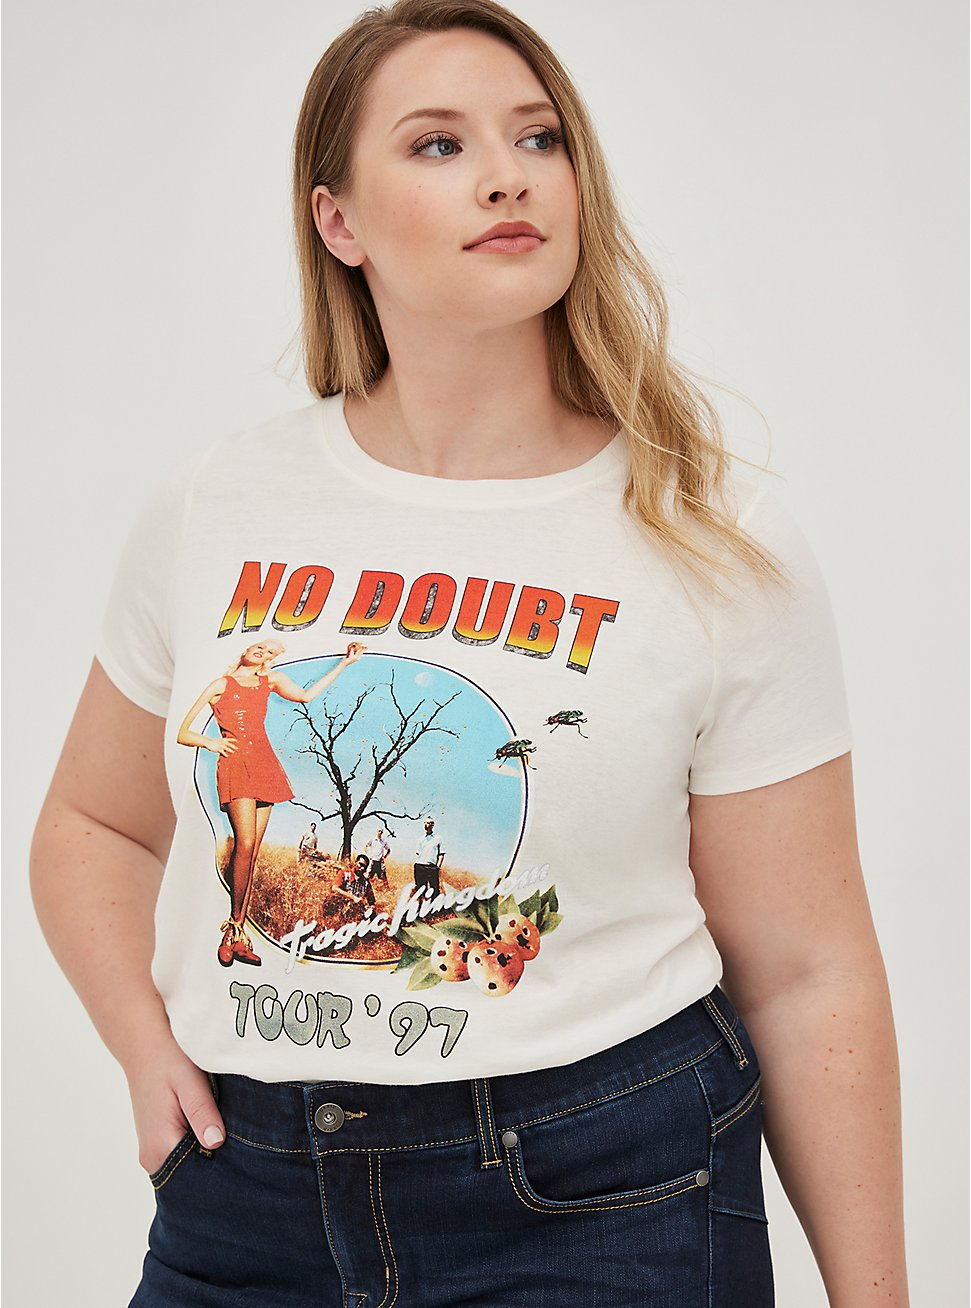 Classic Fit Crew Tee - No Doubt White, BRIGHT WHITE, hi-res